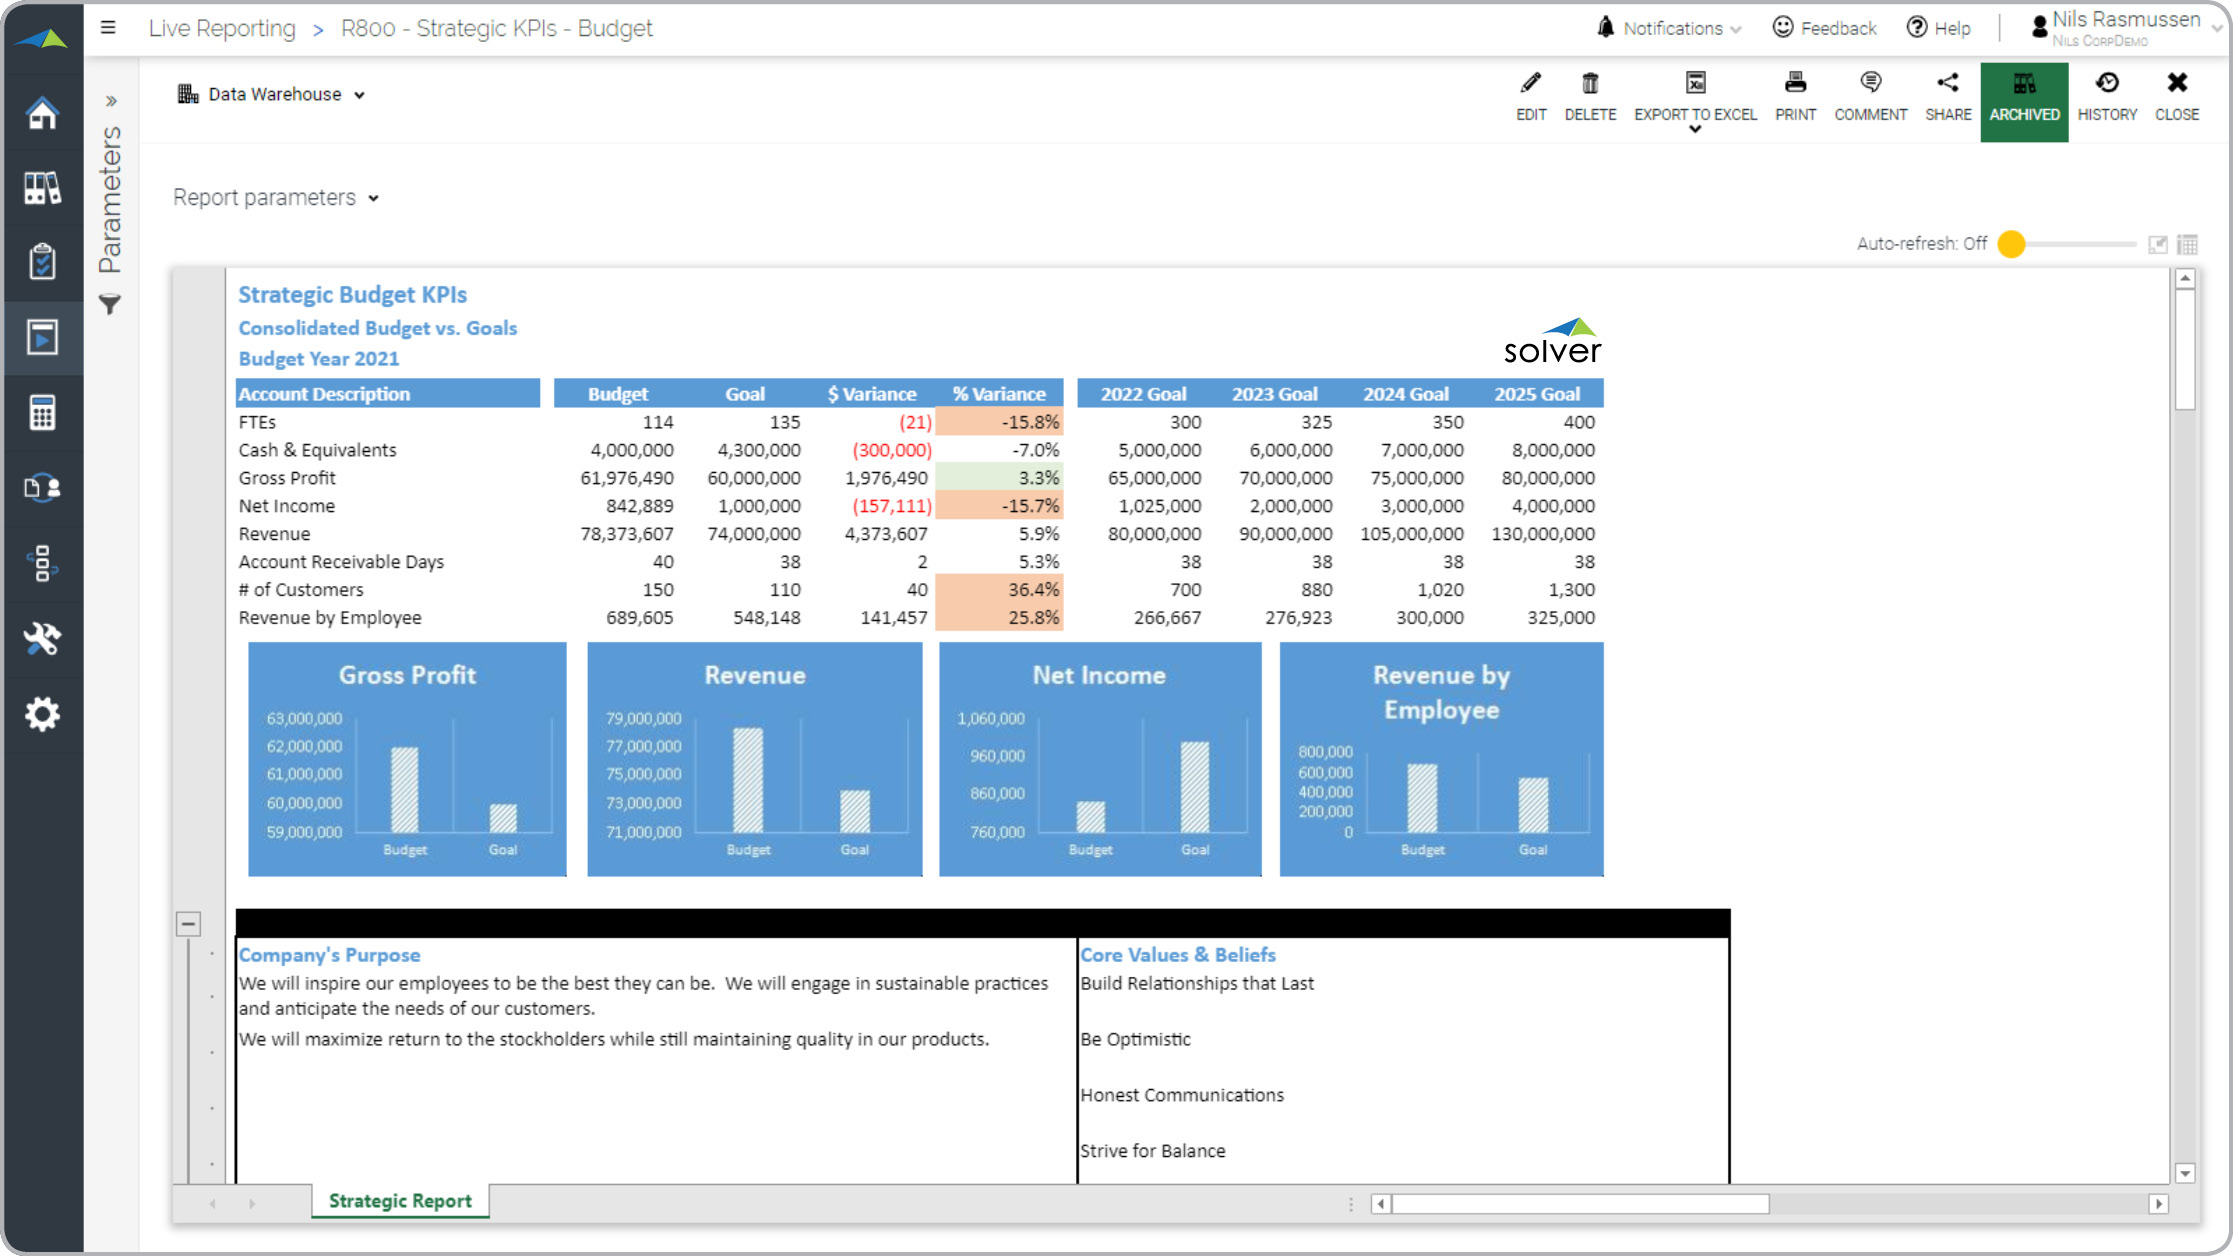 budgeting software dashboard for businesses